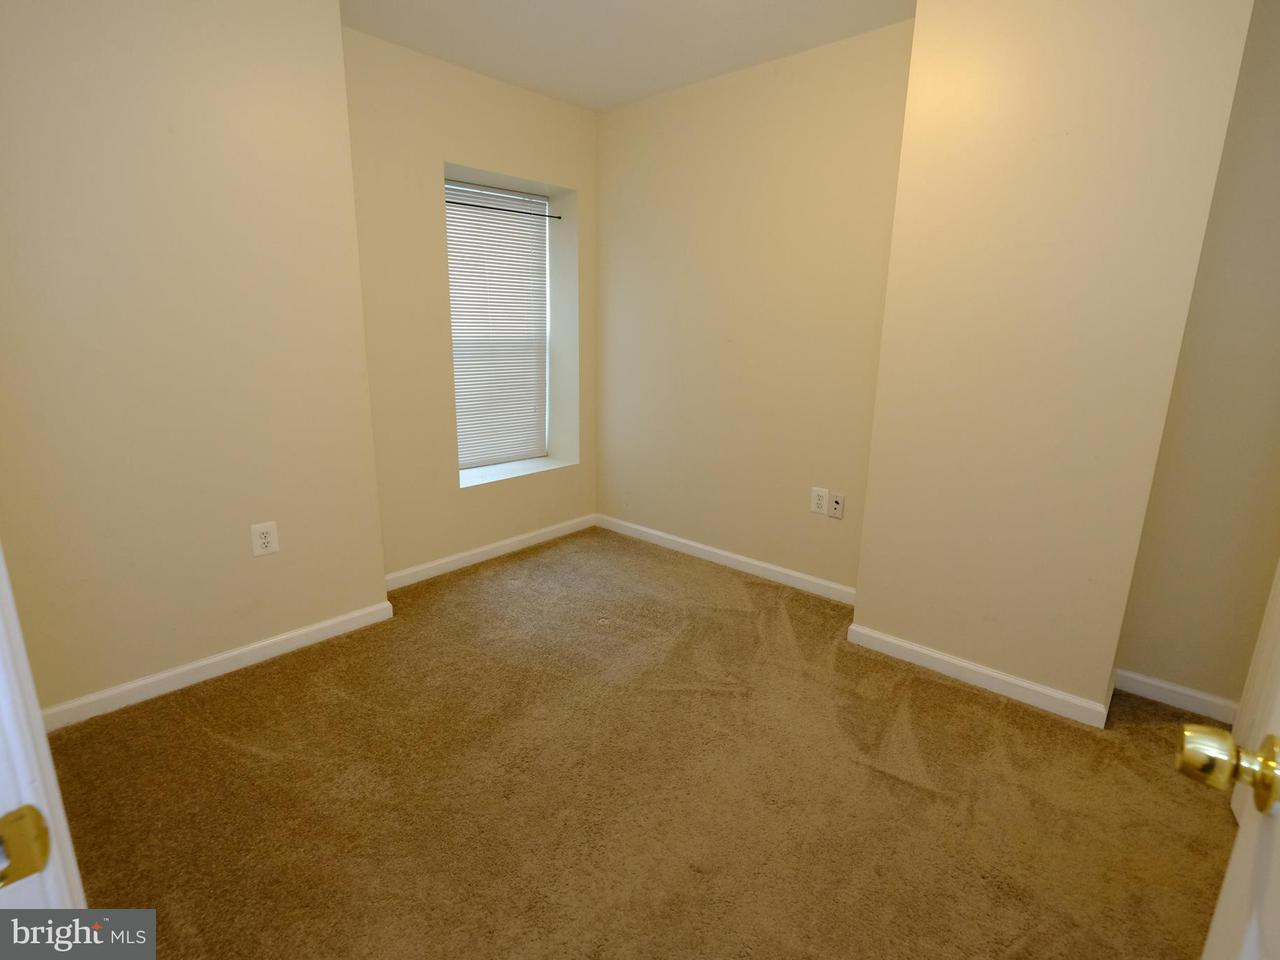 Other Residential for Rent at 127 Ann St S Baltimore, Maryland 21231 United States